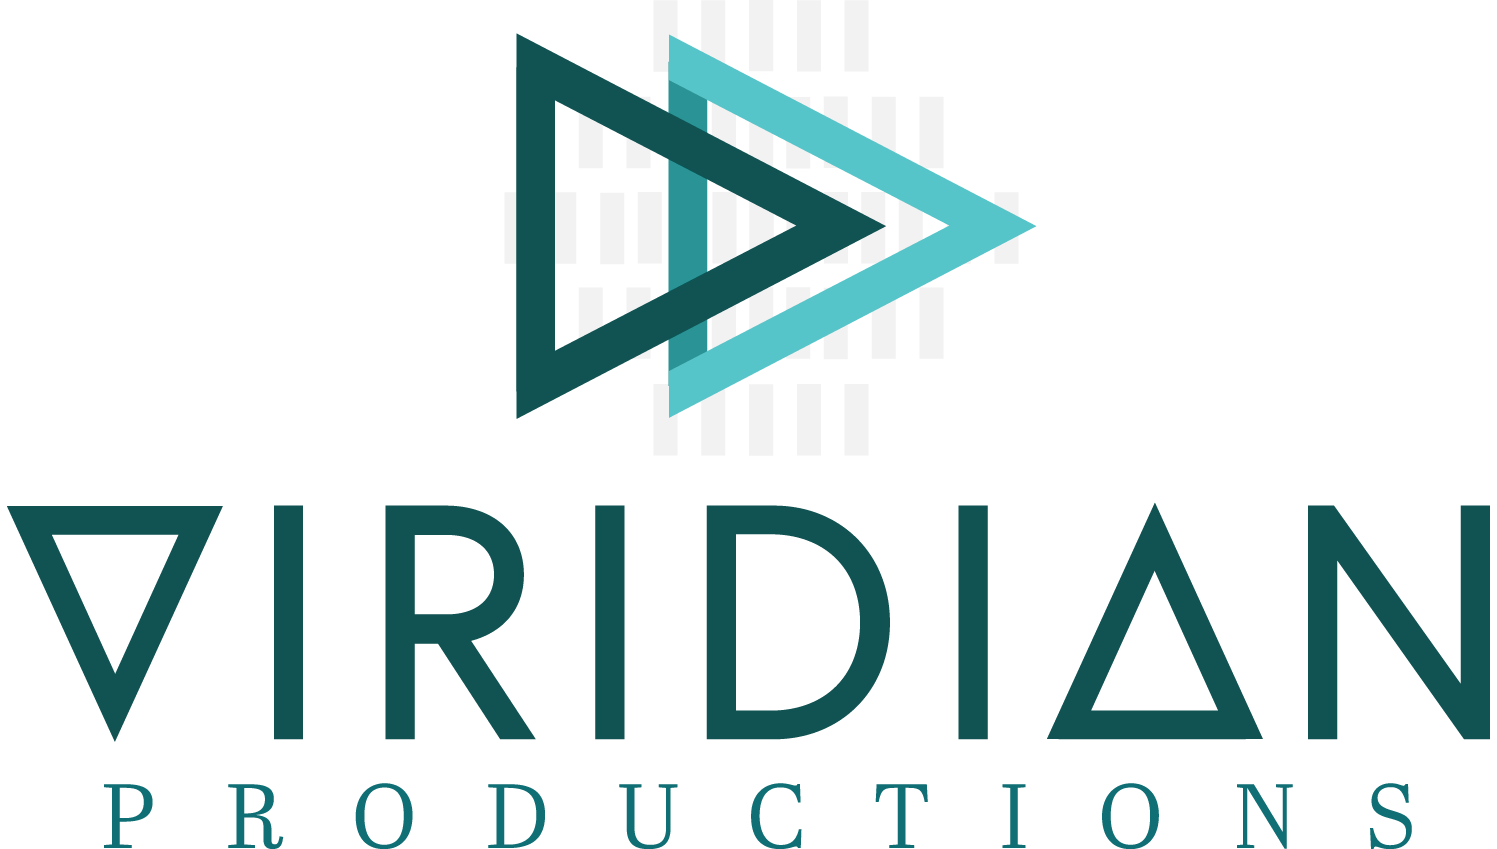 Viridian Productions